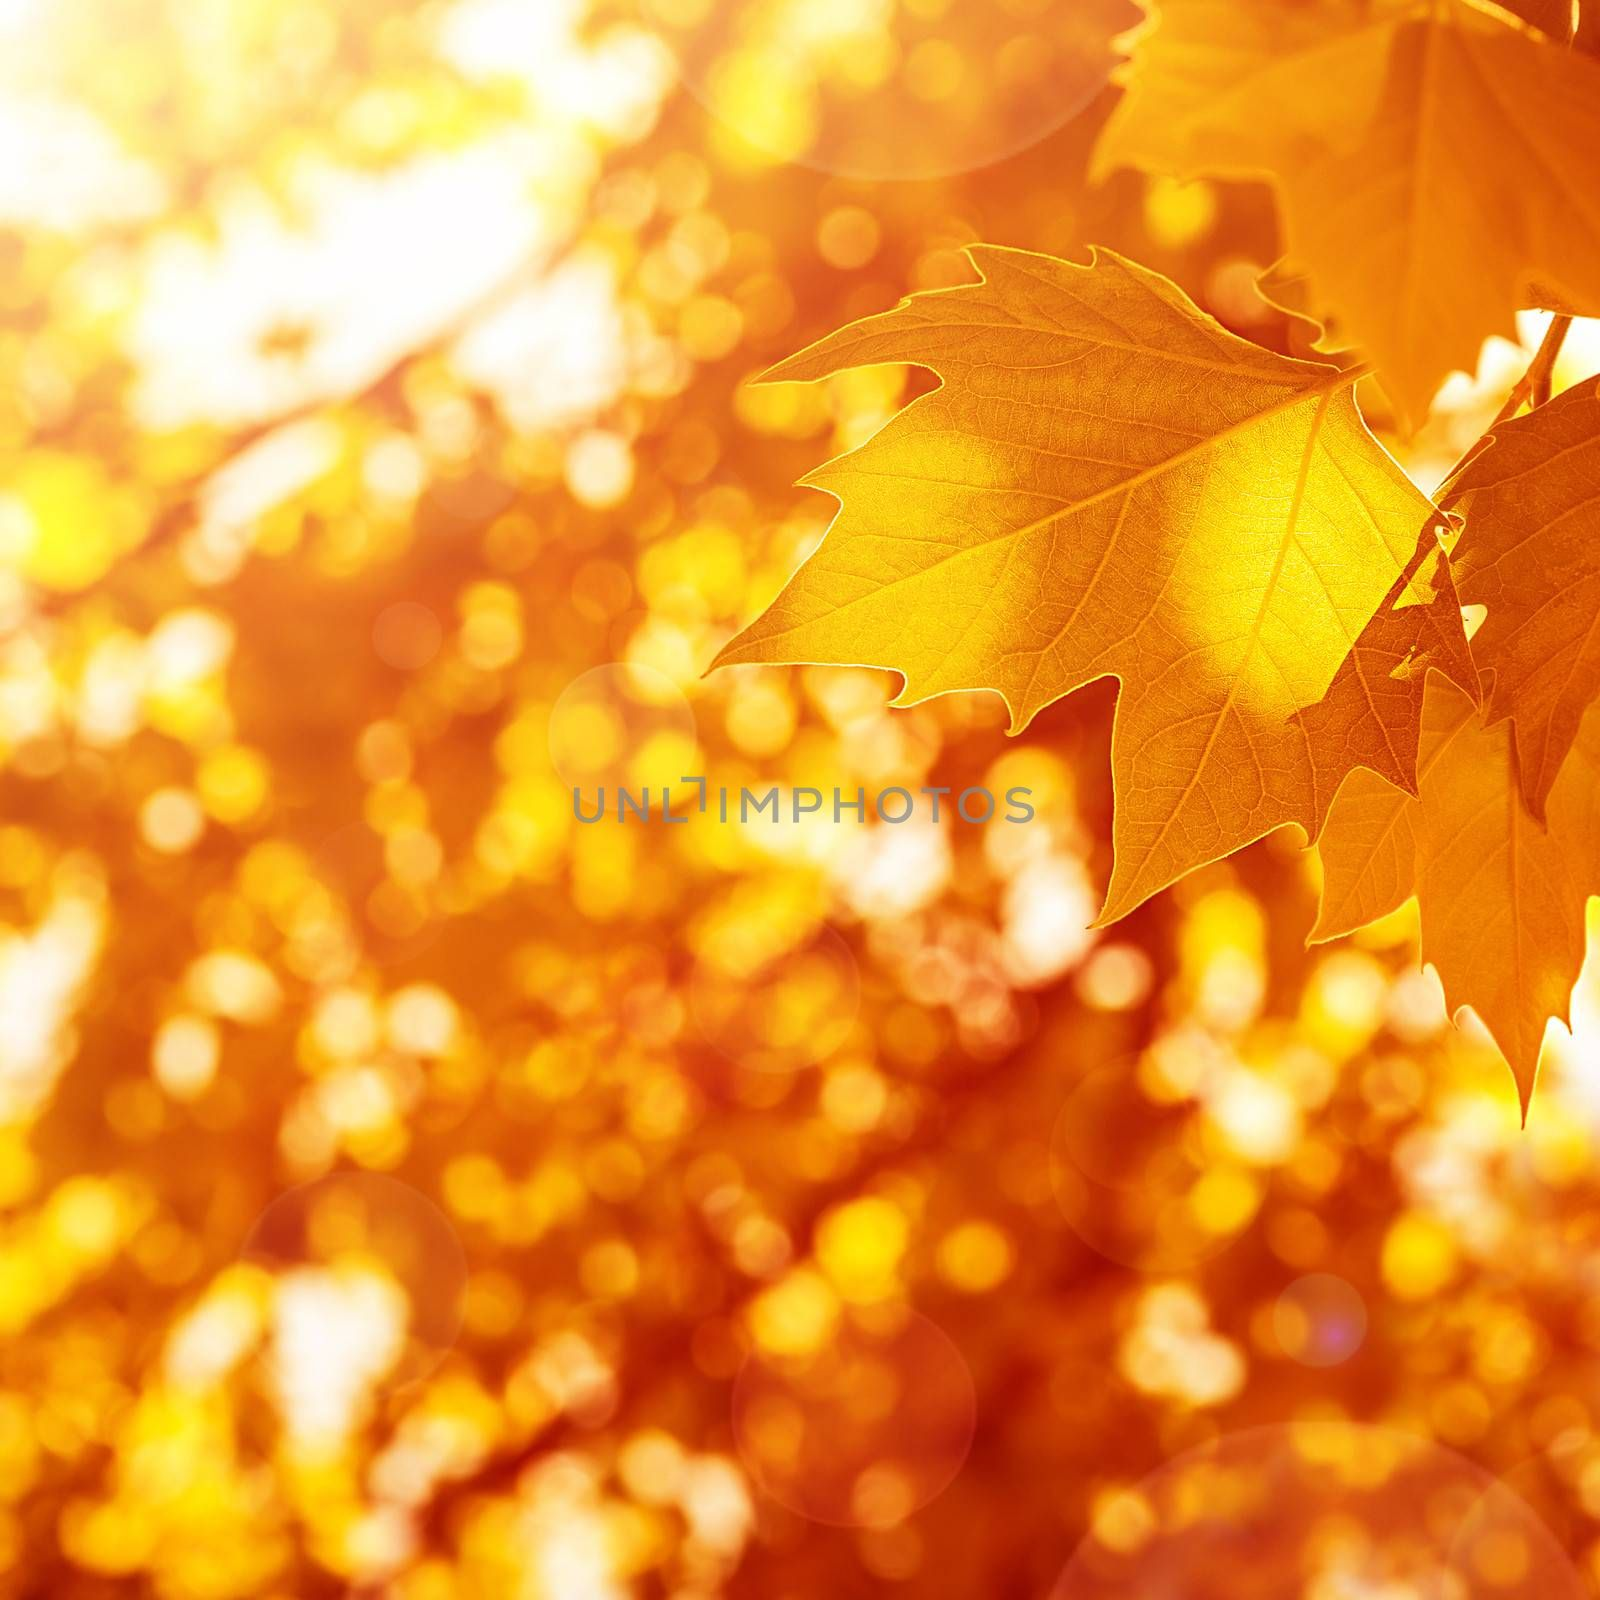 Autumnal leaves background, sunny day, old dry foliage in the park, weather changes, fall season, maple leaf, autumn nature